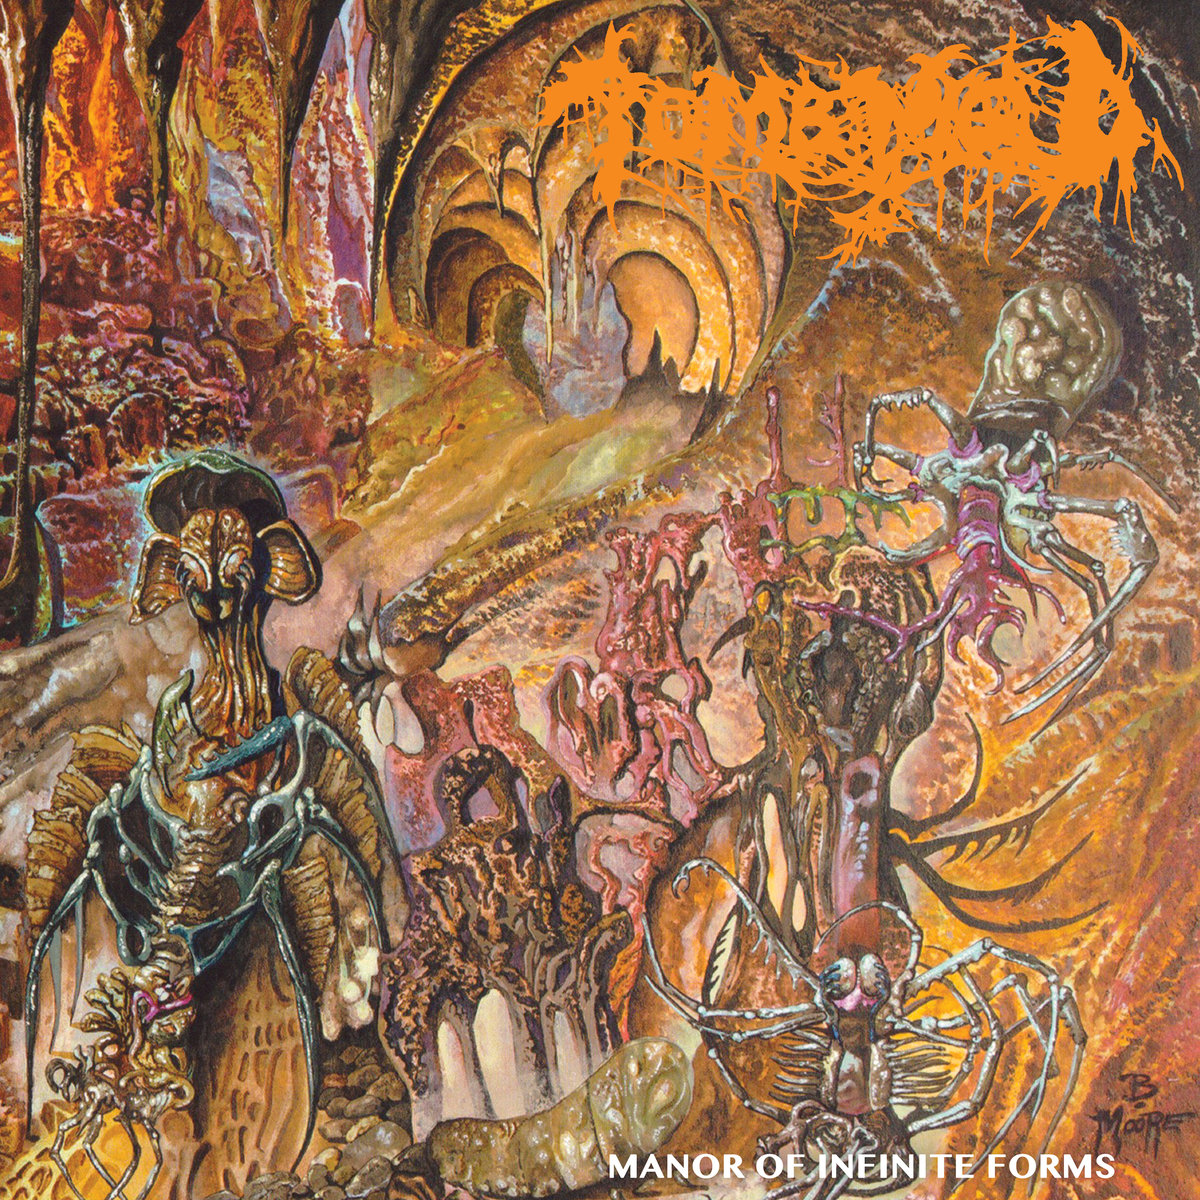 """Album Review:Manor of Infinite Forms by Tomb Mold -   Having been introduced to Tomb Mold on their 2016 debut, Primordial Malignity, I've always kept my eye on this little group of Canadian death metal killers. I thought Primordial Malignity was an interesting and refreshing take on old school death metal style, despite their name, Tomb Mold offers something fresh yet again. Now that they return with their sophomore effort on the AWESOME record label, 20 Buck Spin, its all the better and sicker.Where as the first record was pretty much balls out/amputated, gritty death metal;Manor of Infinite forms is a tad more polished with a lot more style… which, as you well know, is something I'm all for. There's a fine line to walk though, especially within the death metal crypts. When a band like Tomb Mold established themselves with dark, fast, evil, dirty, gross sounding metal (which I love) but wants to expand in a new direction while staying true to their roots at the same time, especially within the confines of death metal, that can prove to be a difficult mission. Tomb Mold seemingly scoffs at that, puts their cigarette out in a human skull, and says, """"mission accomplished."""" They do a remarkable job at maintaining their brutal death metal spirit while exploring some uncharted graves beyond their previous realm. The production here is a little better.. more polished.. but not too much. The songs seem to slow down just enough for the newly expanded line up to show their skills. And they do it so well in fact that when you go back and listen to their previous record, you might realize that the full on brutal speed approach to their flavor of death metal just isn't their cup o blood. Not that it was or is bad, but this is so much cooler. Please do NOT mistake this as me saying that Tomb Mold has gone soft (no necrophilia pun intended), as there are more than enough D-beats and pure death metal rage on this one; its just combined with a little more groove. The only way I can"""